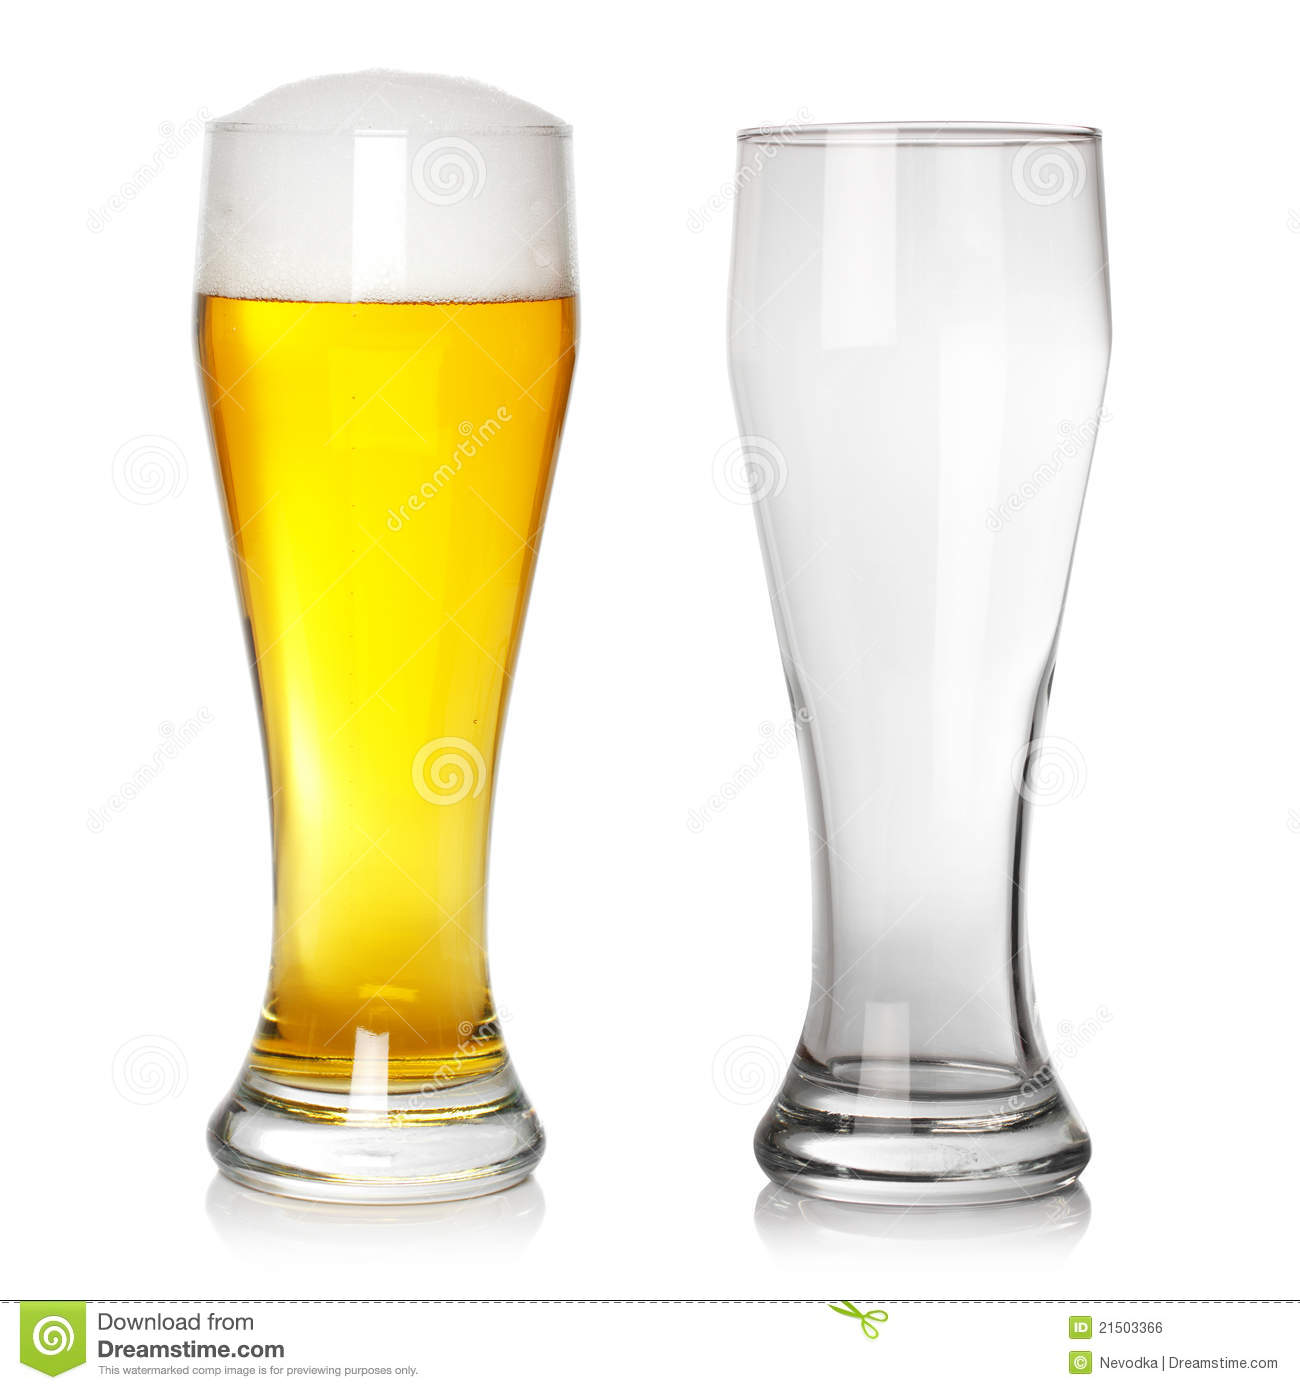 Worksheet Full Empty clip art empty and full clipart kid beer glass royalty free stock image 21503366